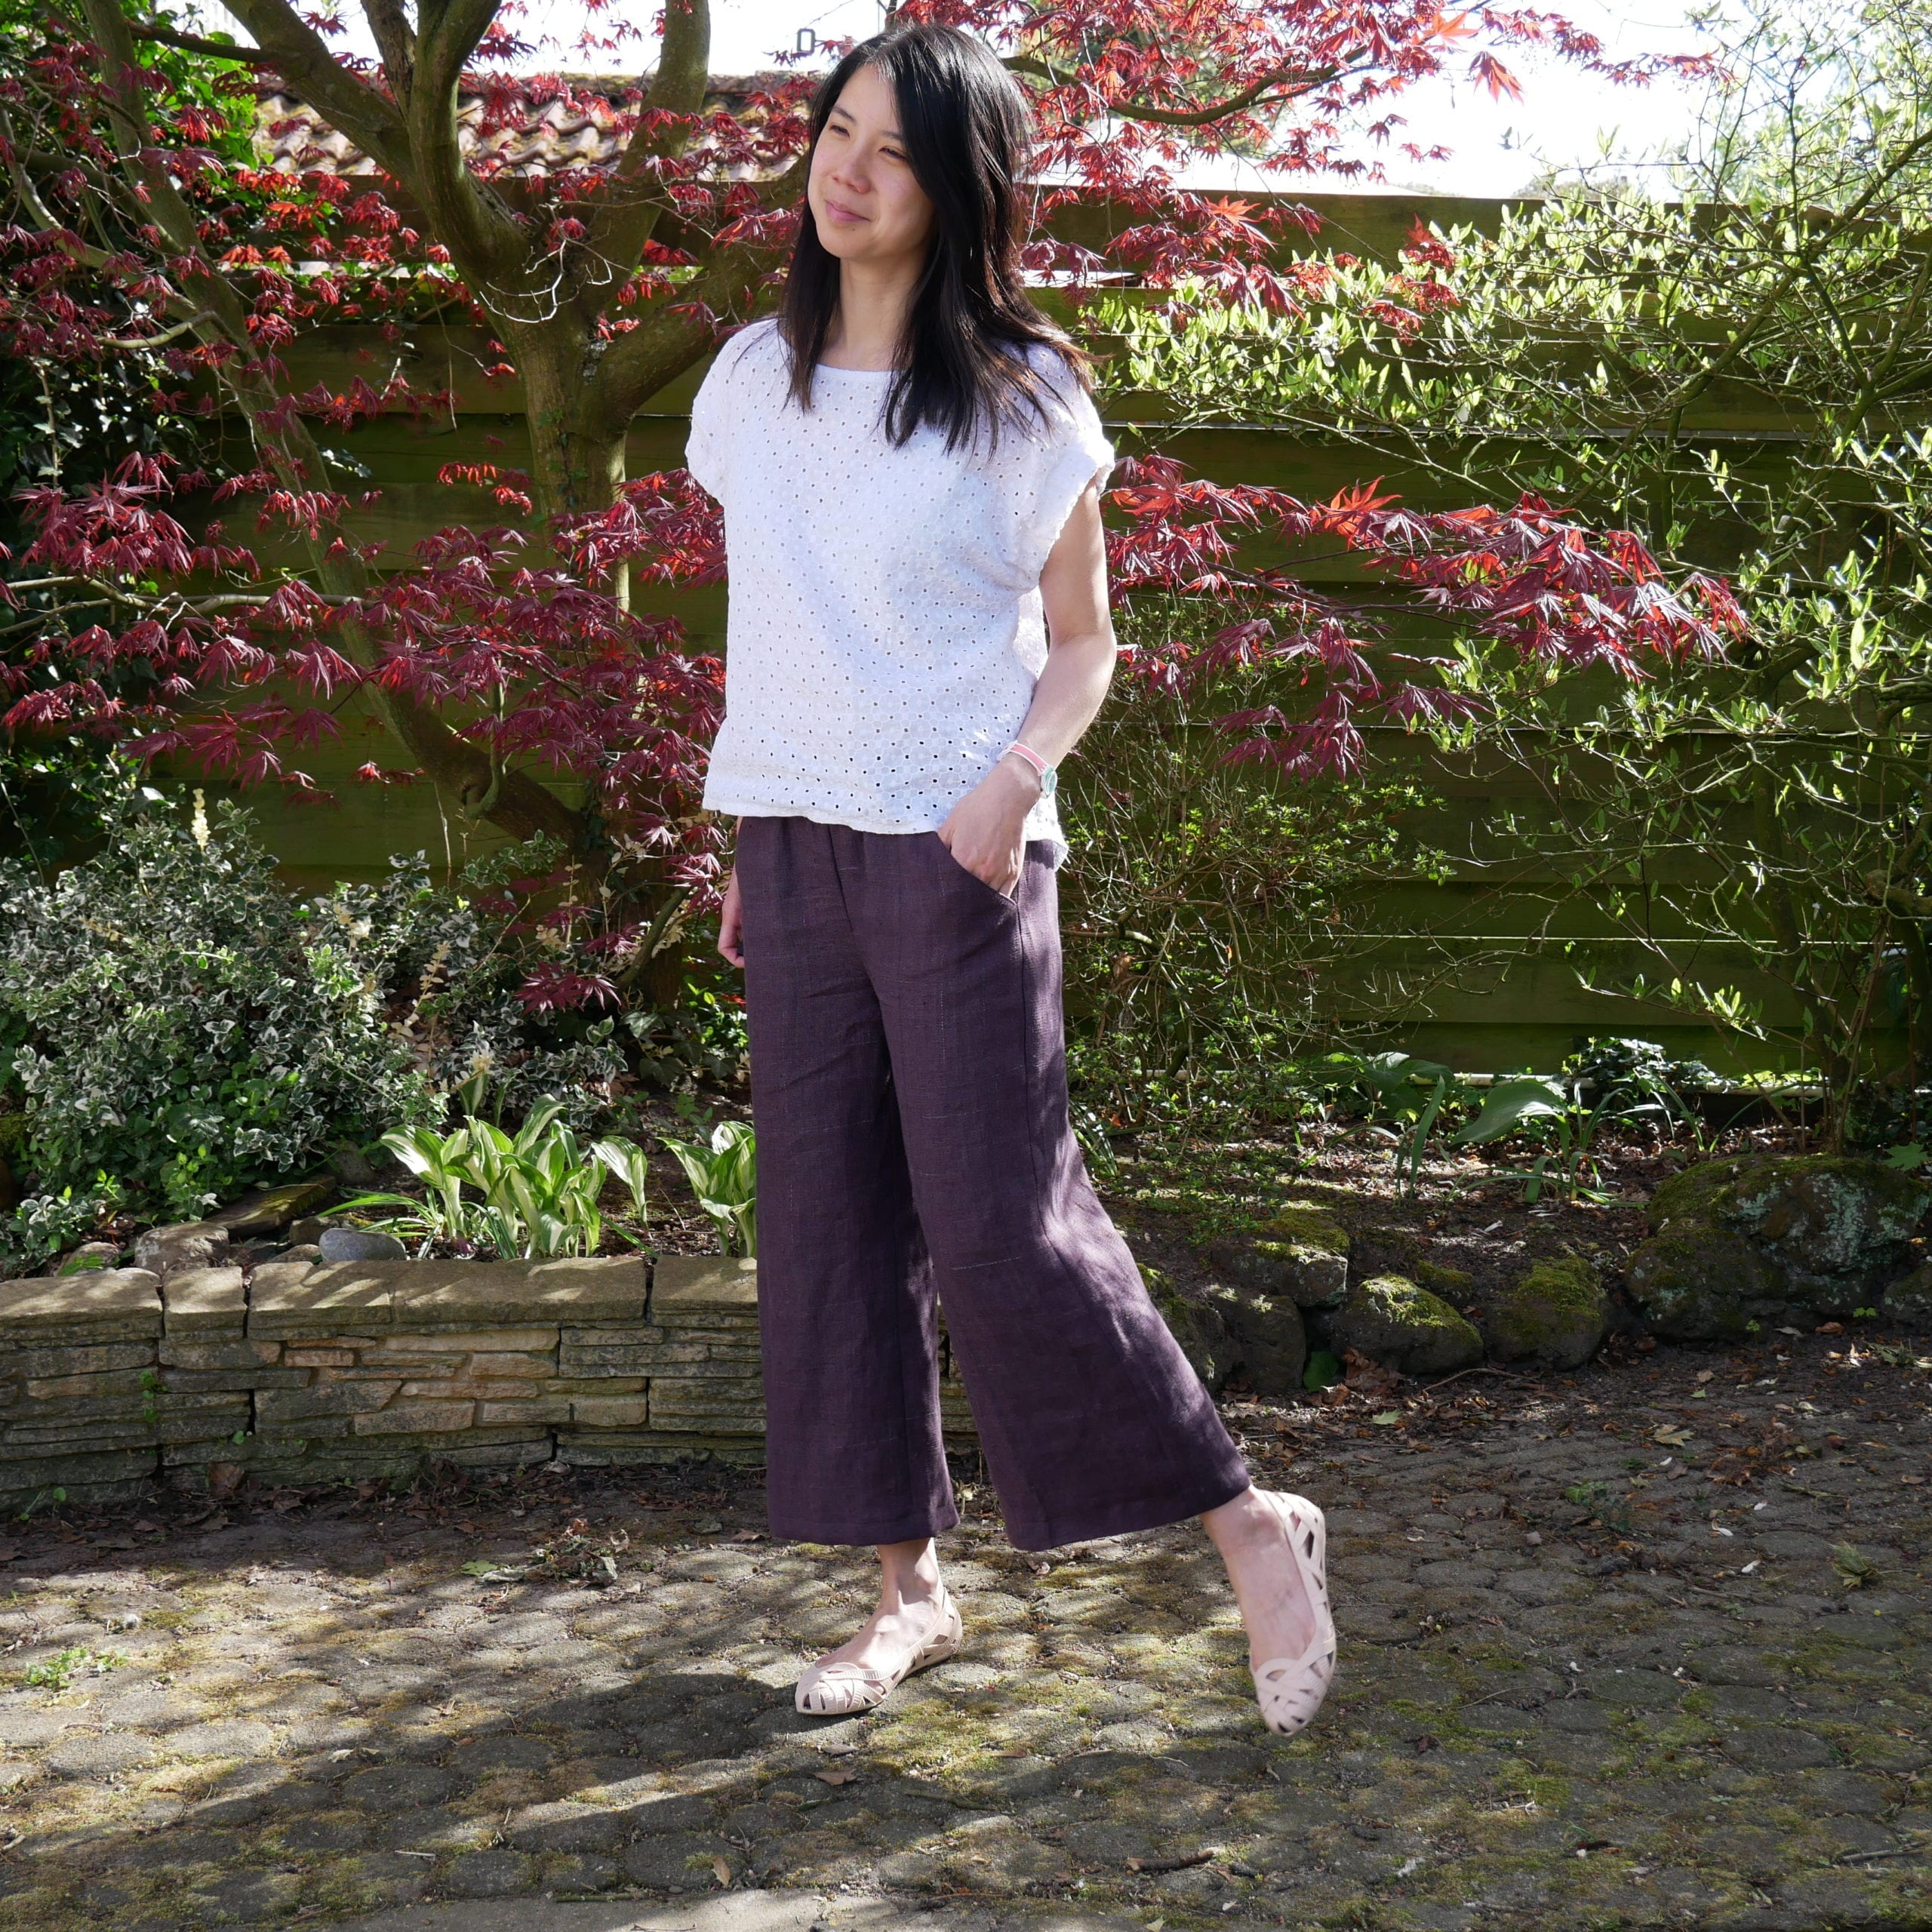 Kate wears a Fibre Mood Frances - white linen eyelet blouse - and Fibre Mood Benita - mulberry coloured linen pants